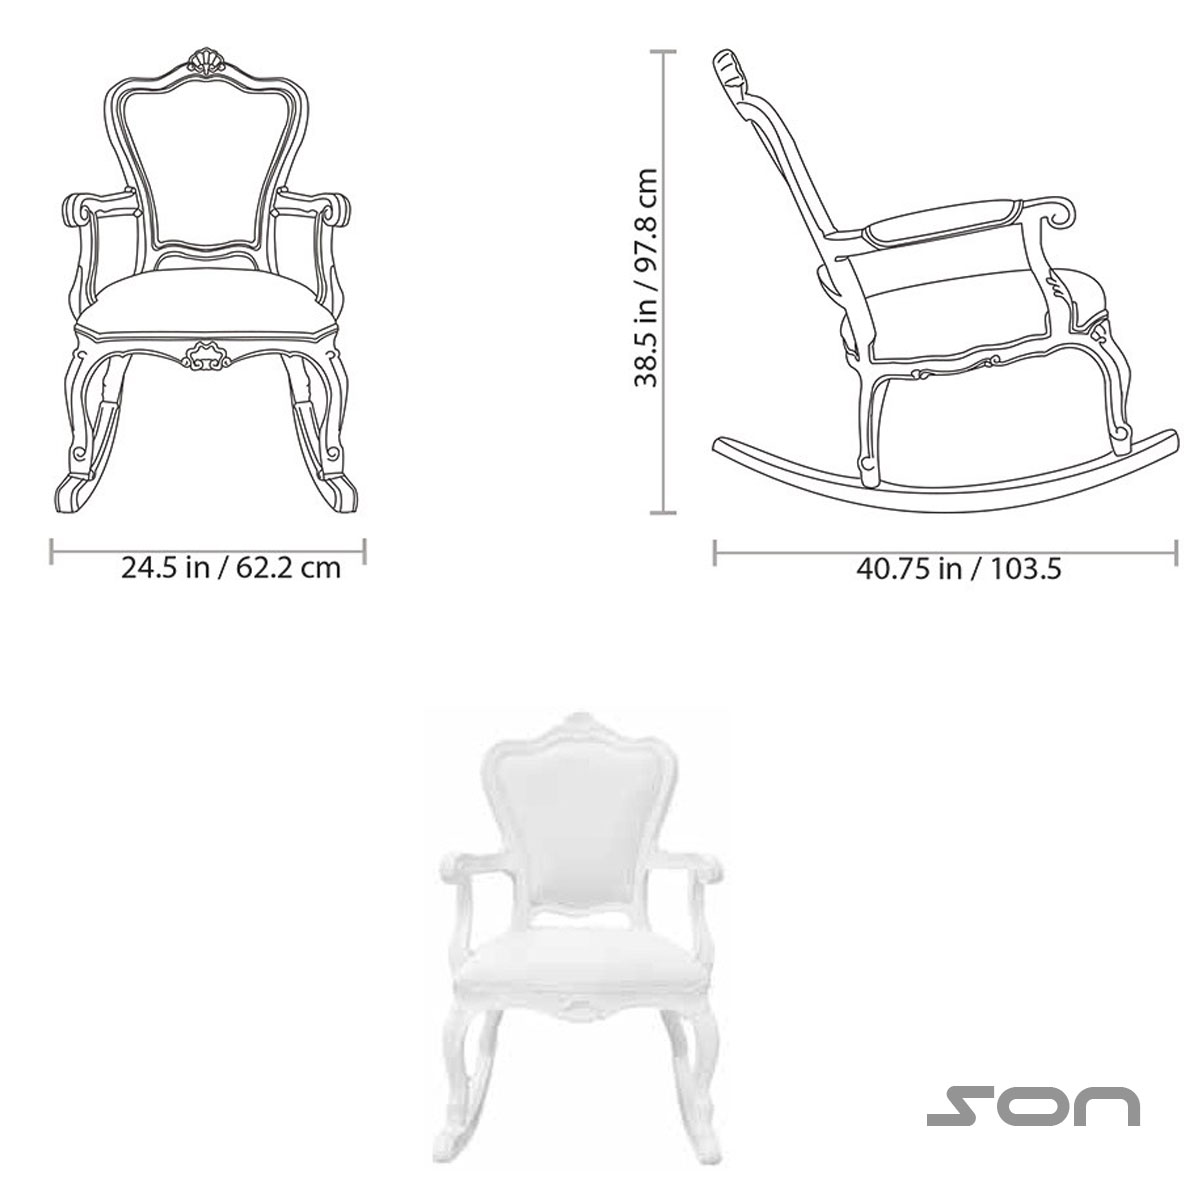 Small Chair Dimensions